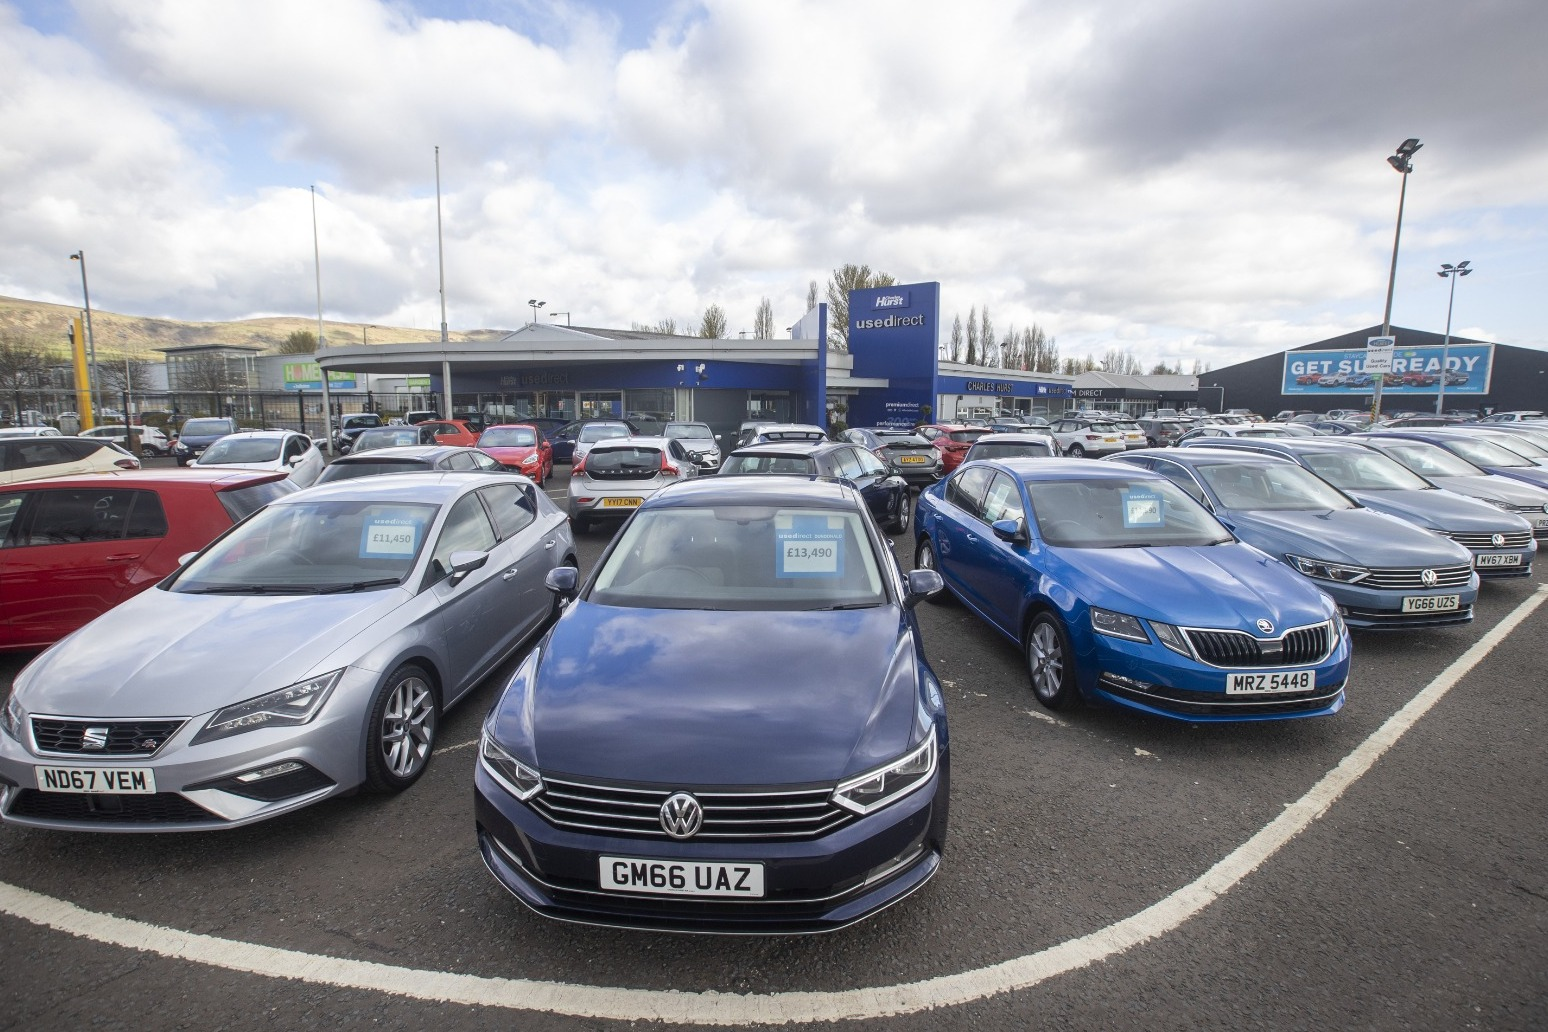 Used car prices continue to surge after another record week